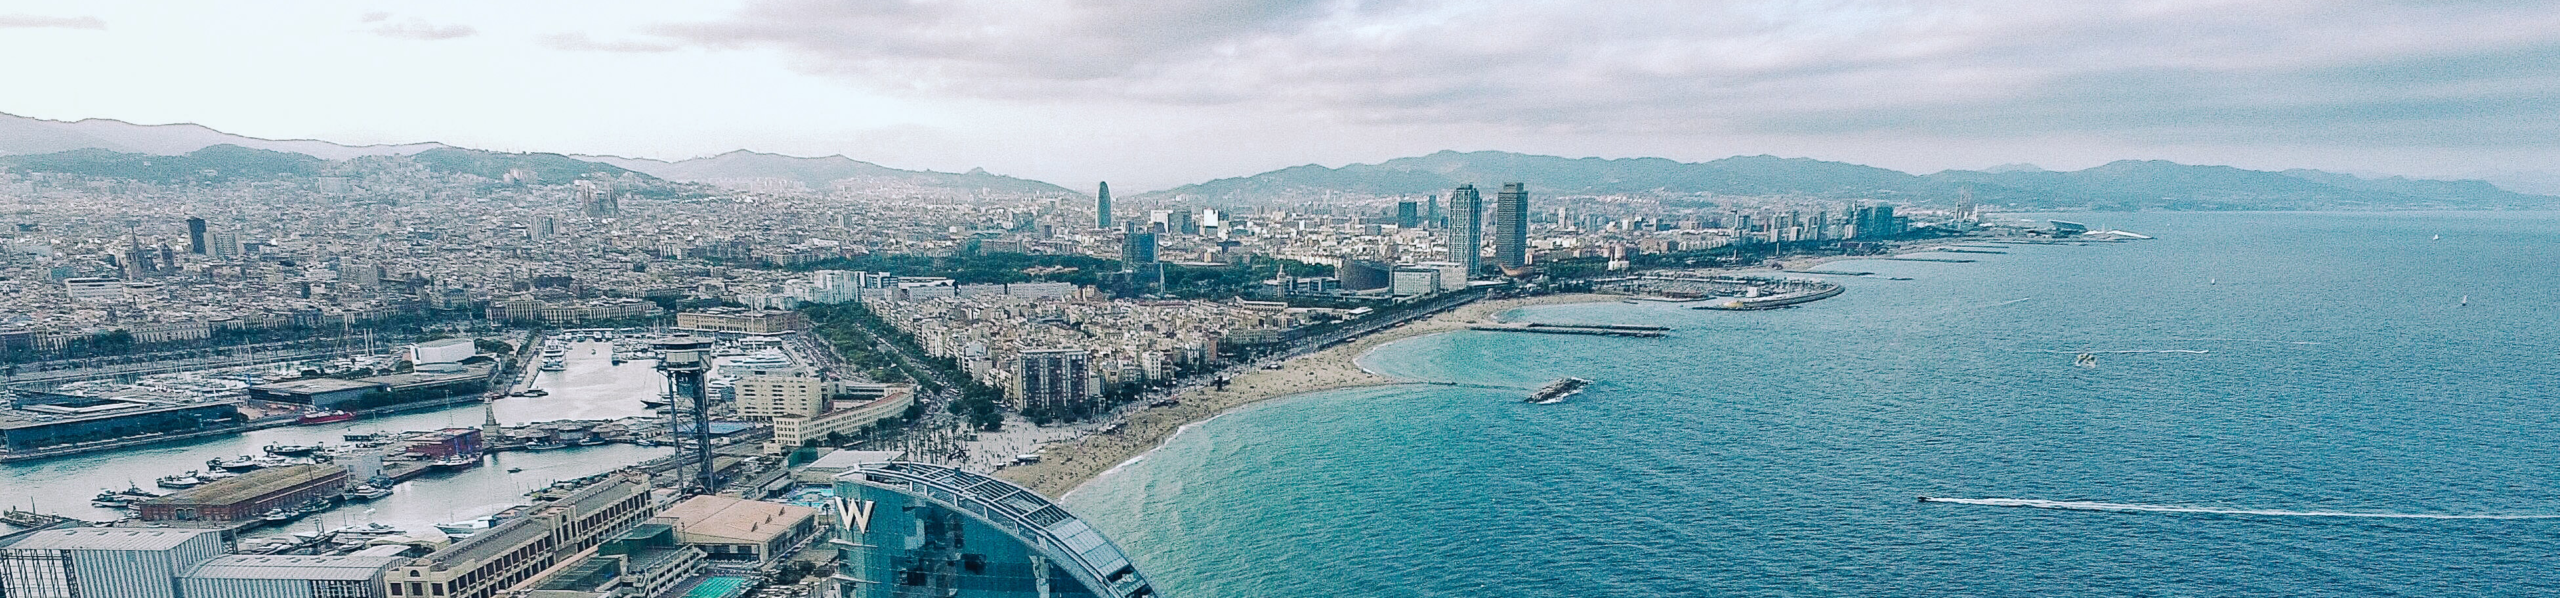 Photography of Barcelona